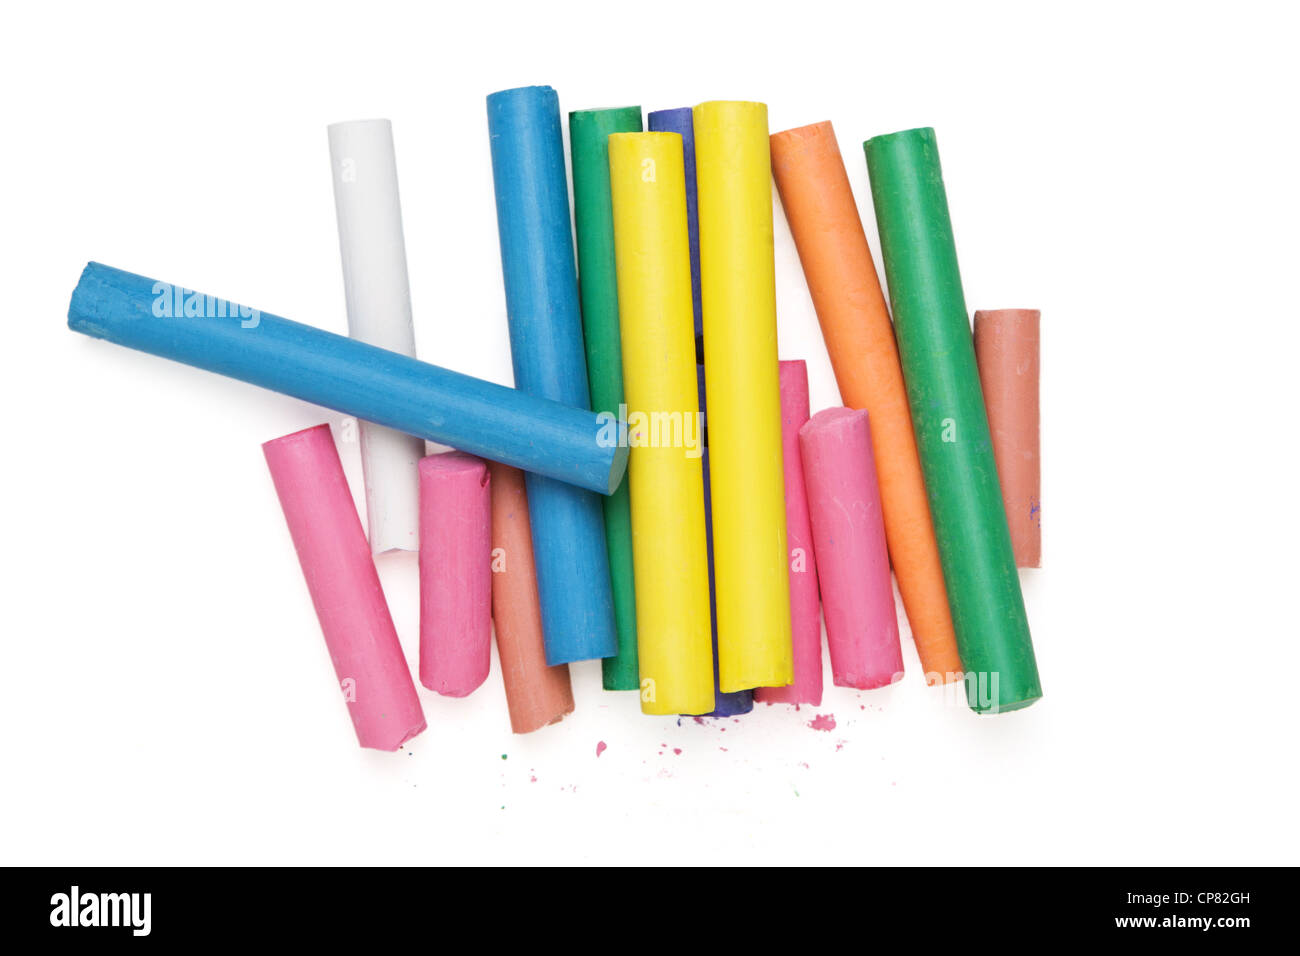 Top down view of group of colored artist pastel chalks isolated on white. Some chalks broken with scattered flakes. - Stock Image